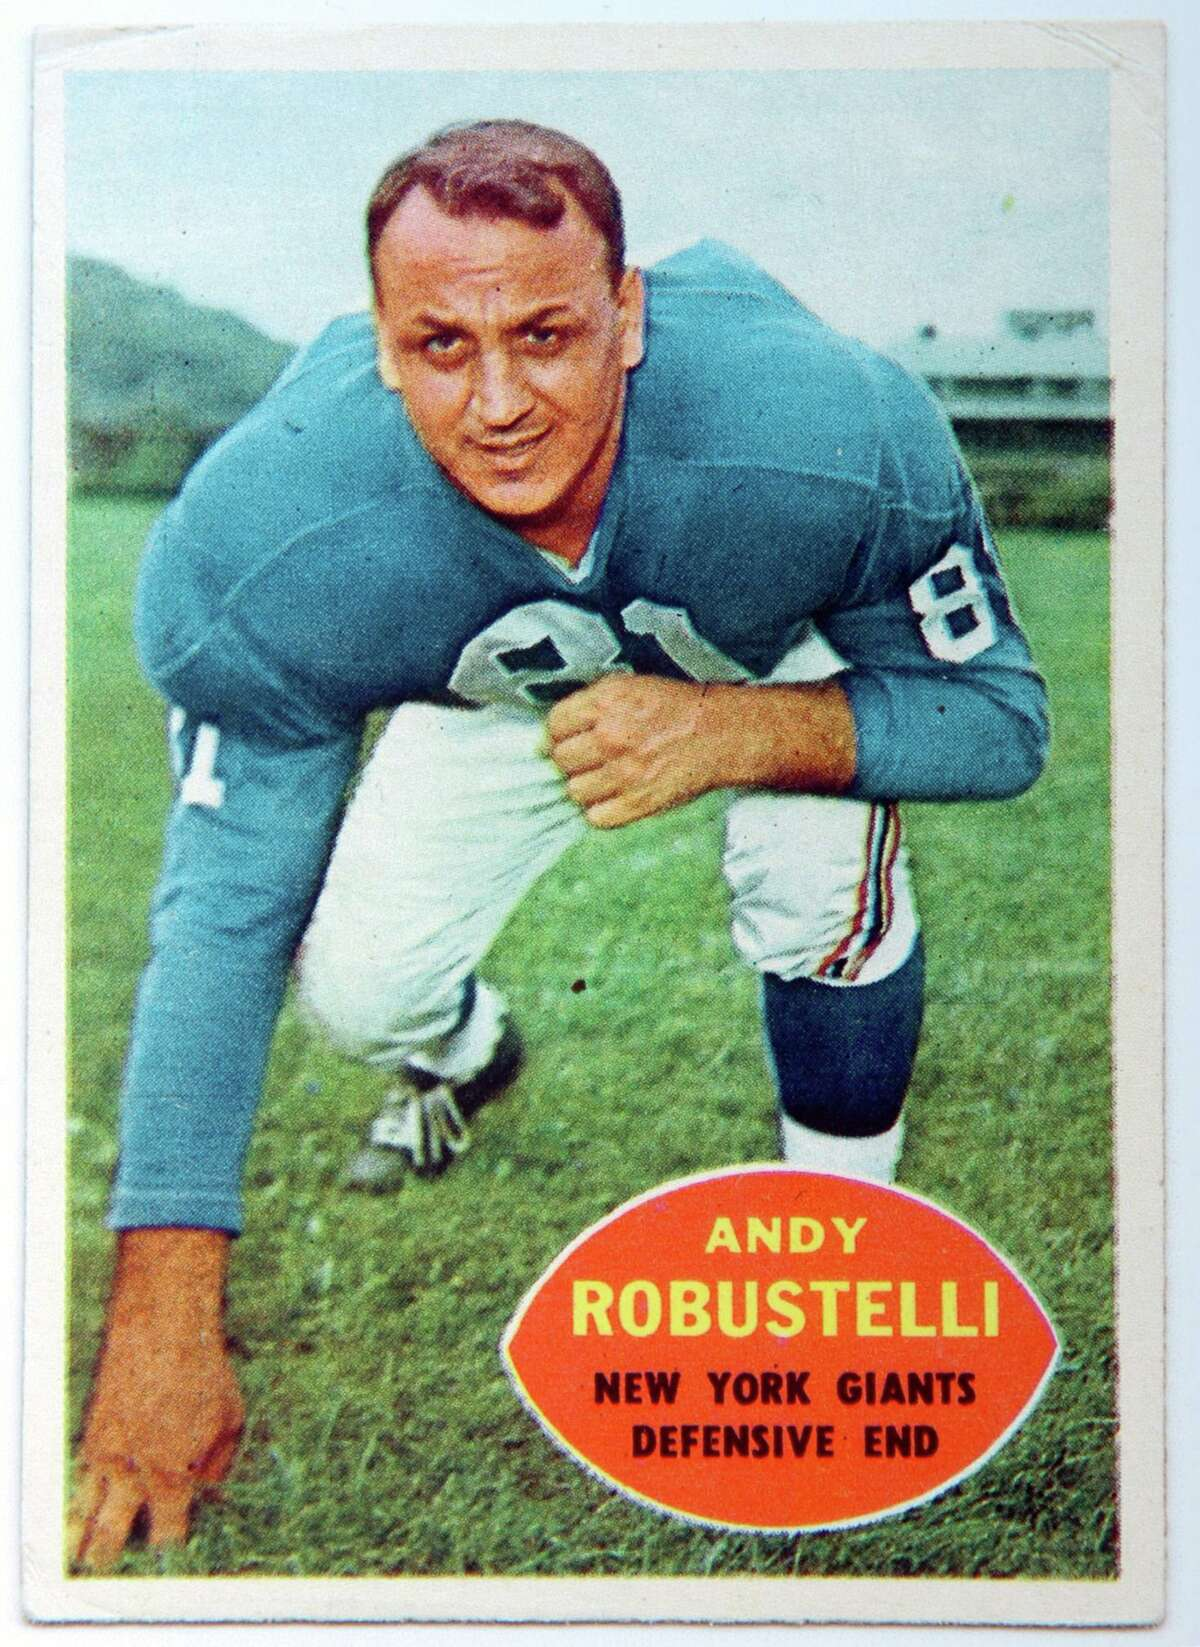 Andy Robustelli's trading card from his playing days with the New York Giants.